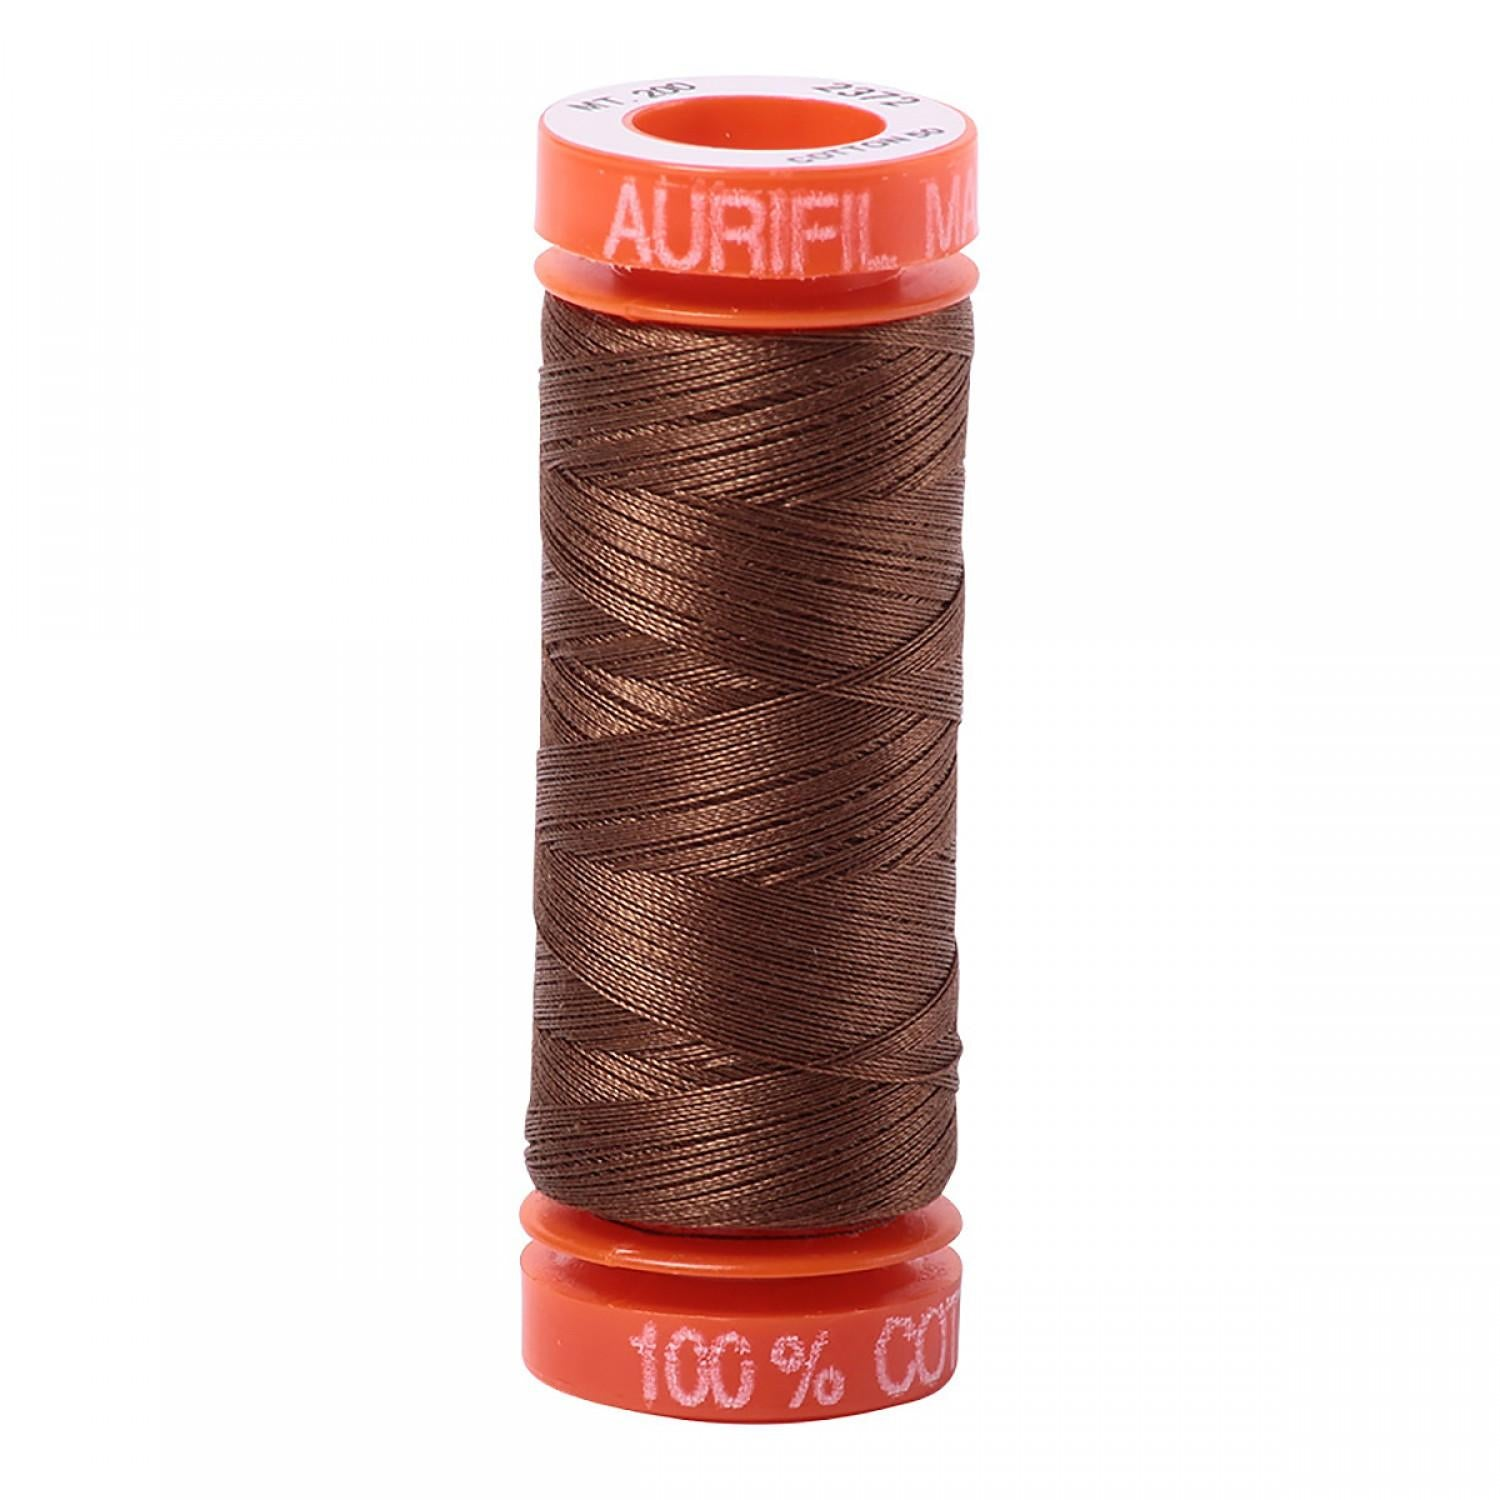 Aurifil Cotton Mako Thread